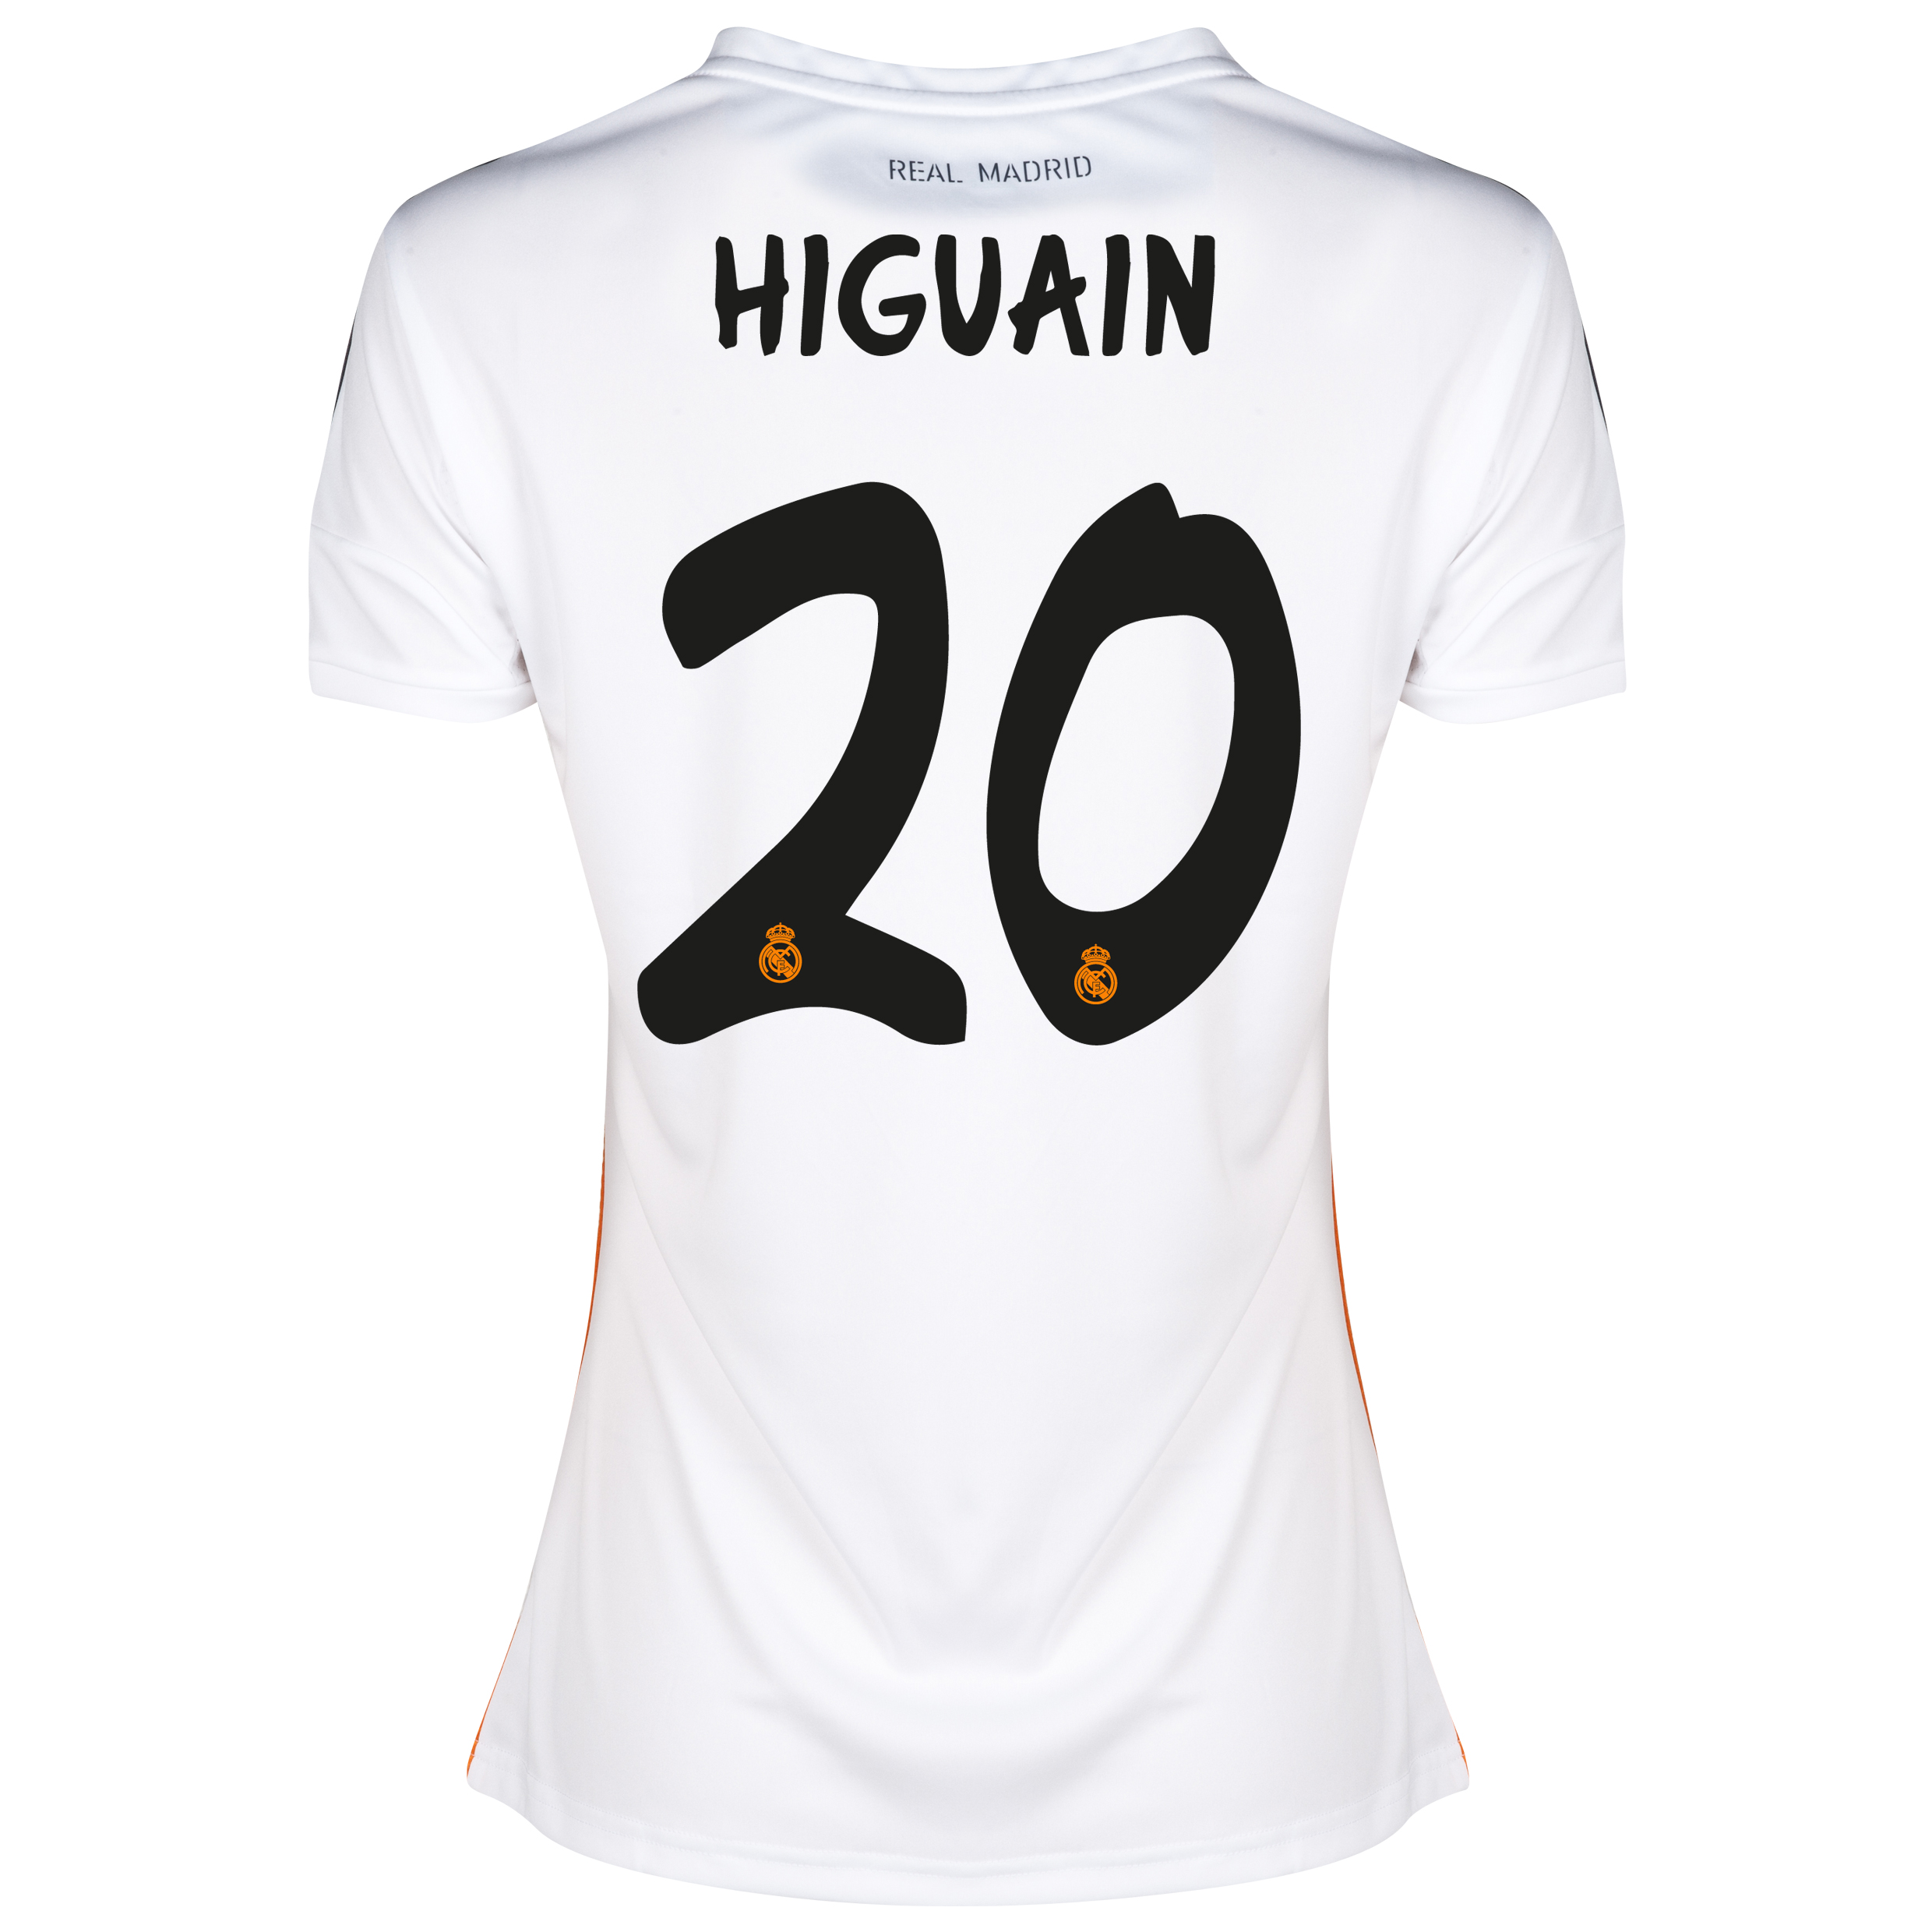 Real Madrid Home Shirt 2013/14 - Womens with Higuaín 20 printing